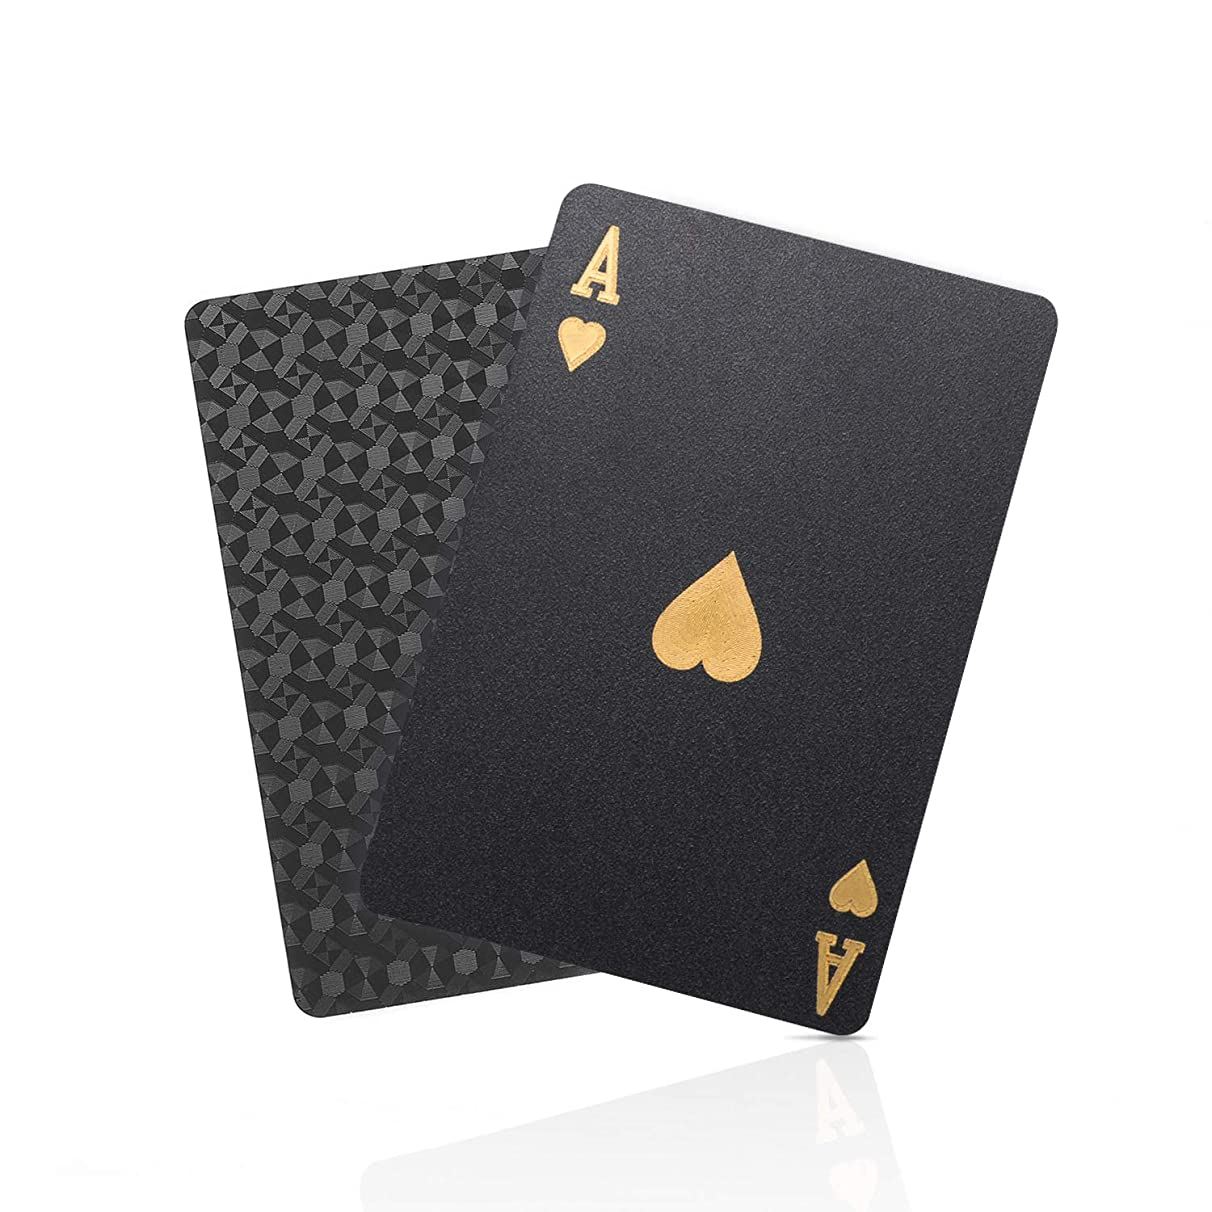 SolarMatrix Black Diamond Plastic Waterproof Playing Cards Novelty(HD, 1 Deck of Cards, Poker Cards Deck